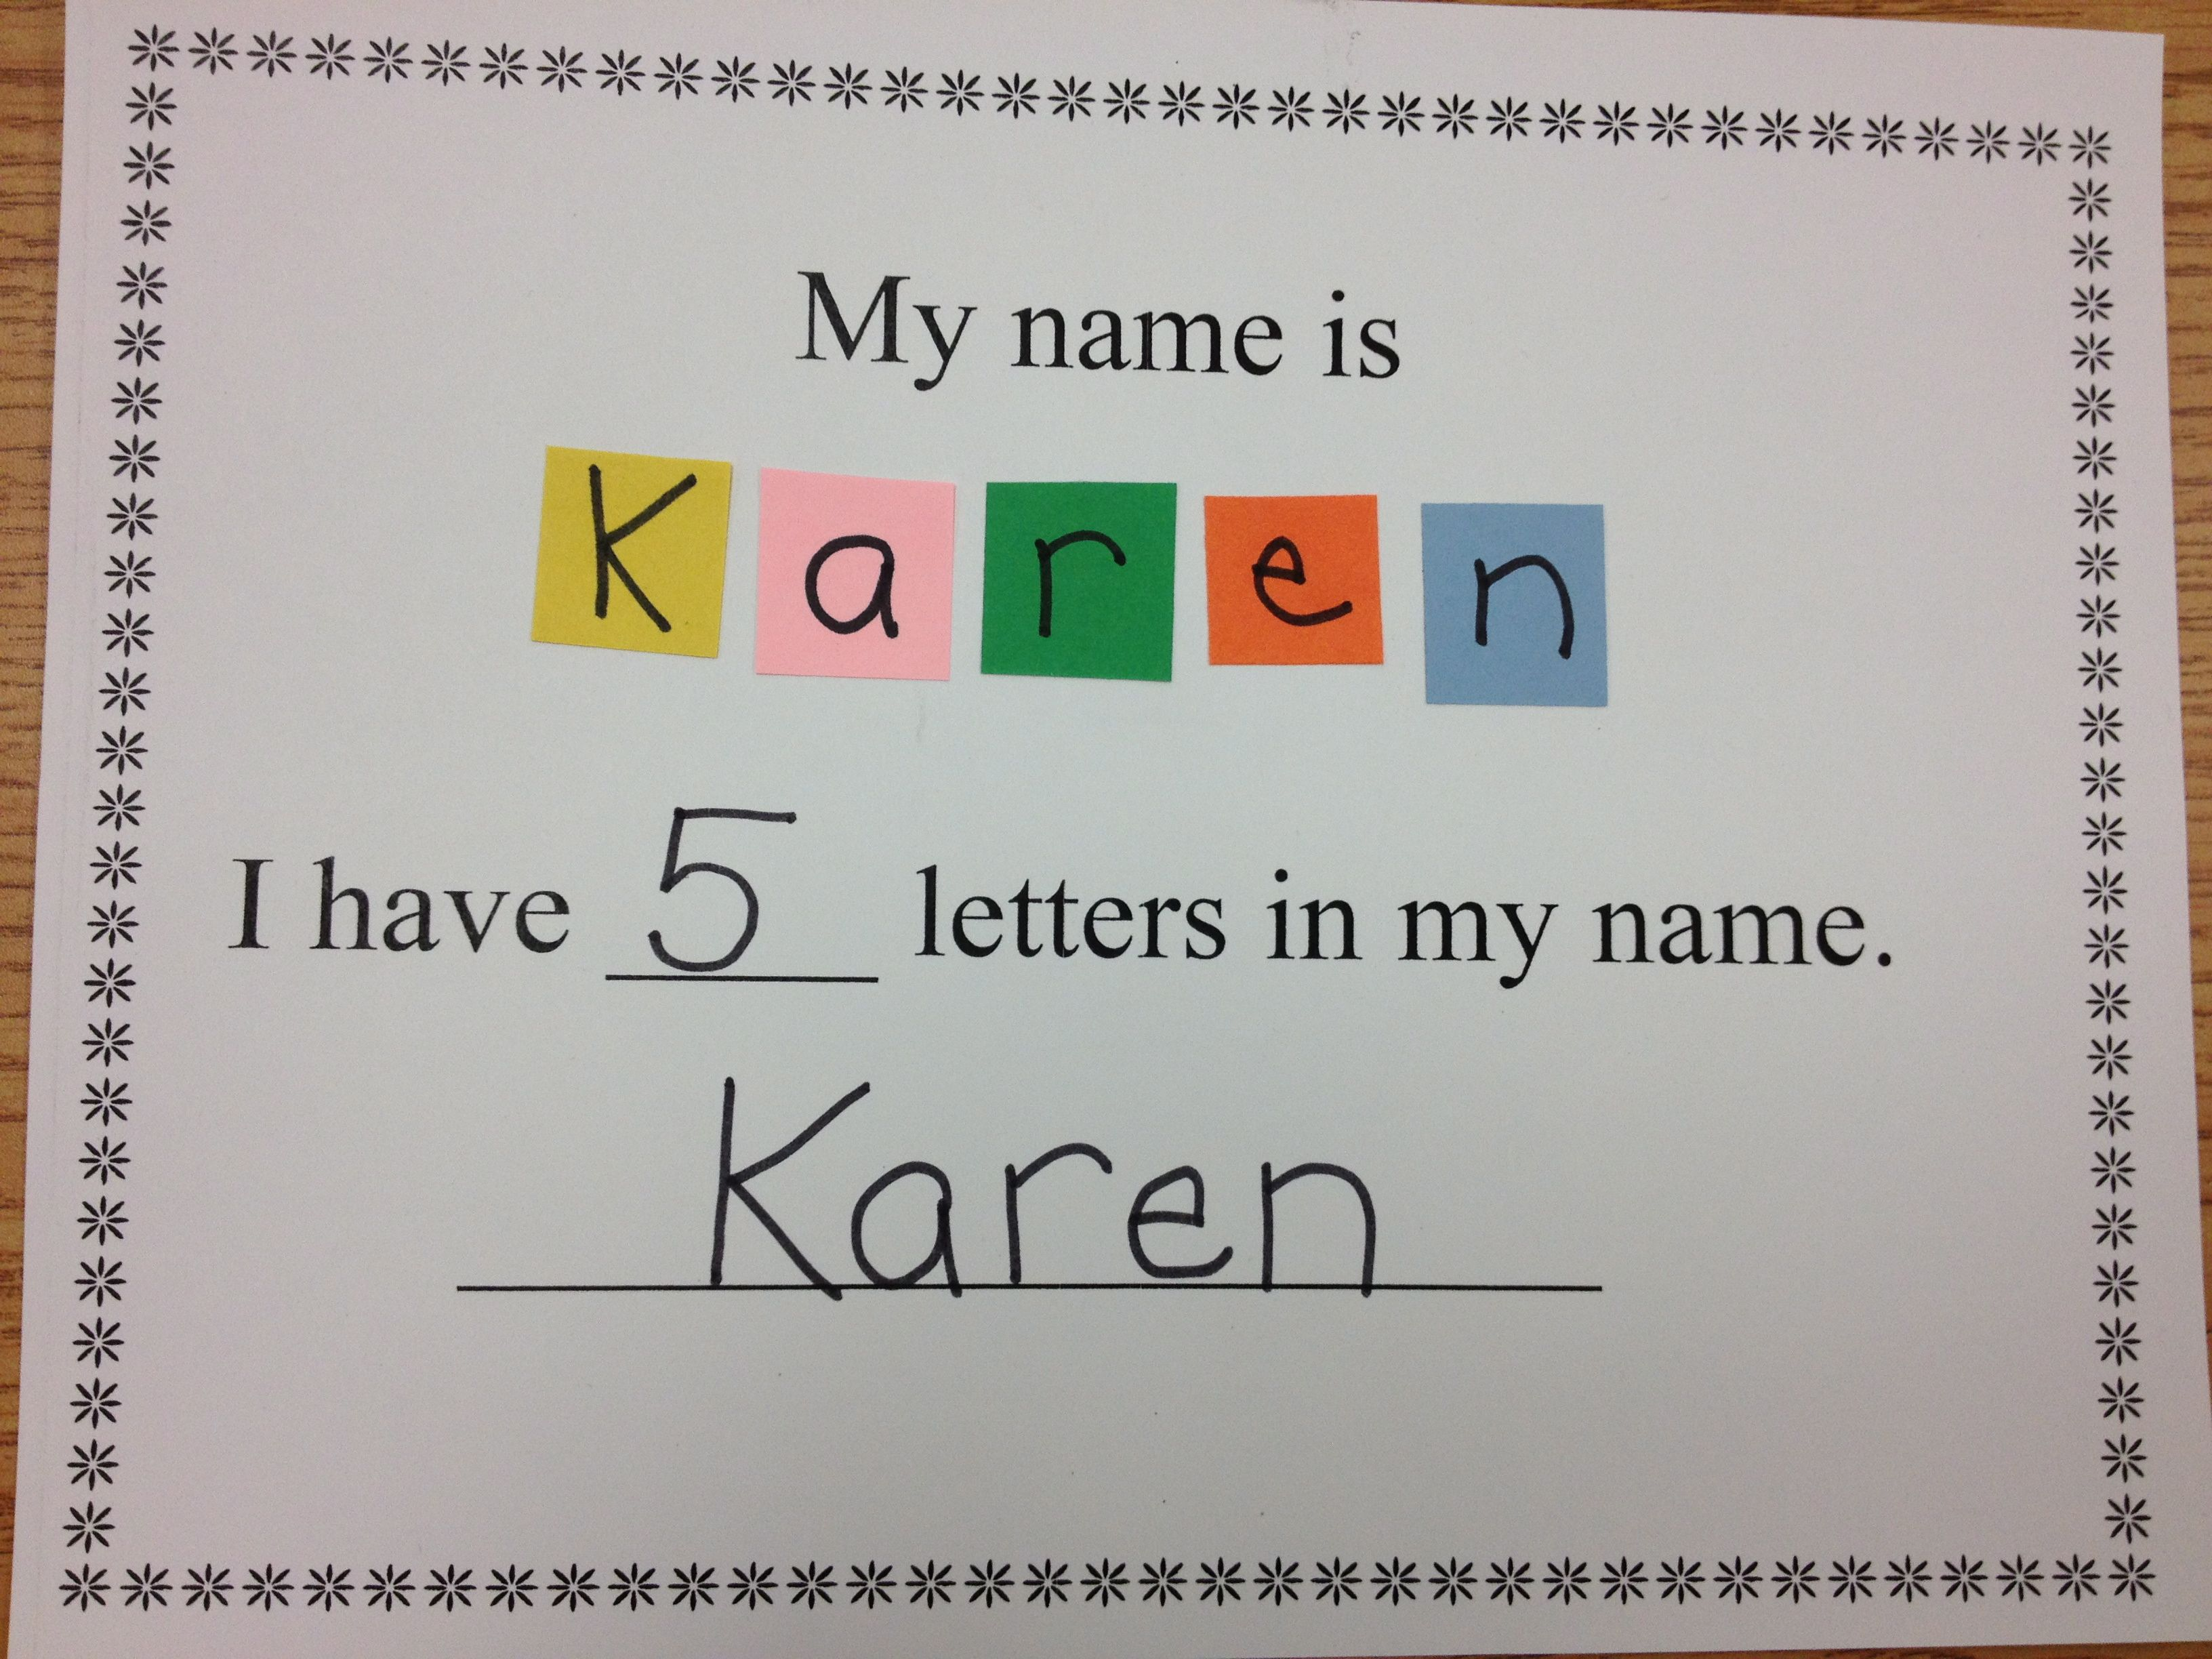 How Many Letters Are In Your Name